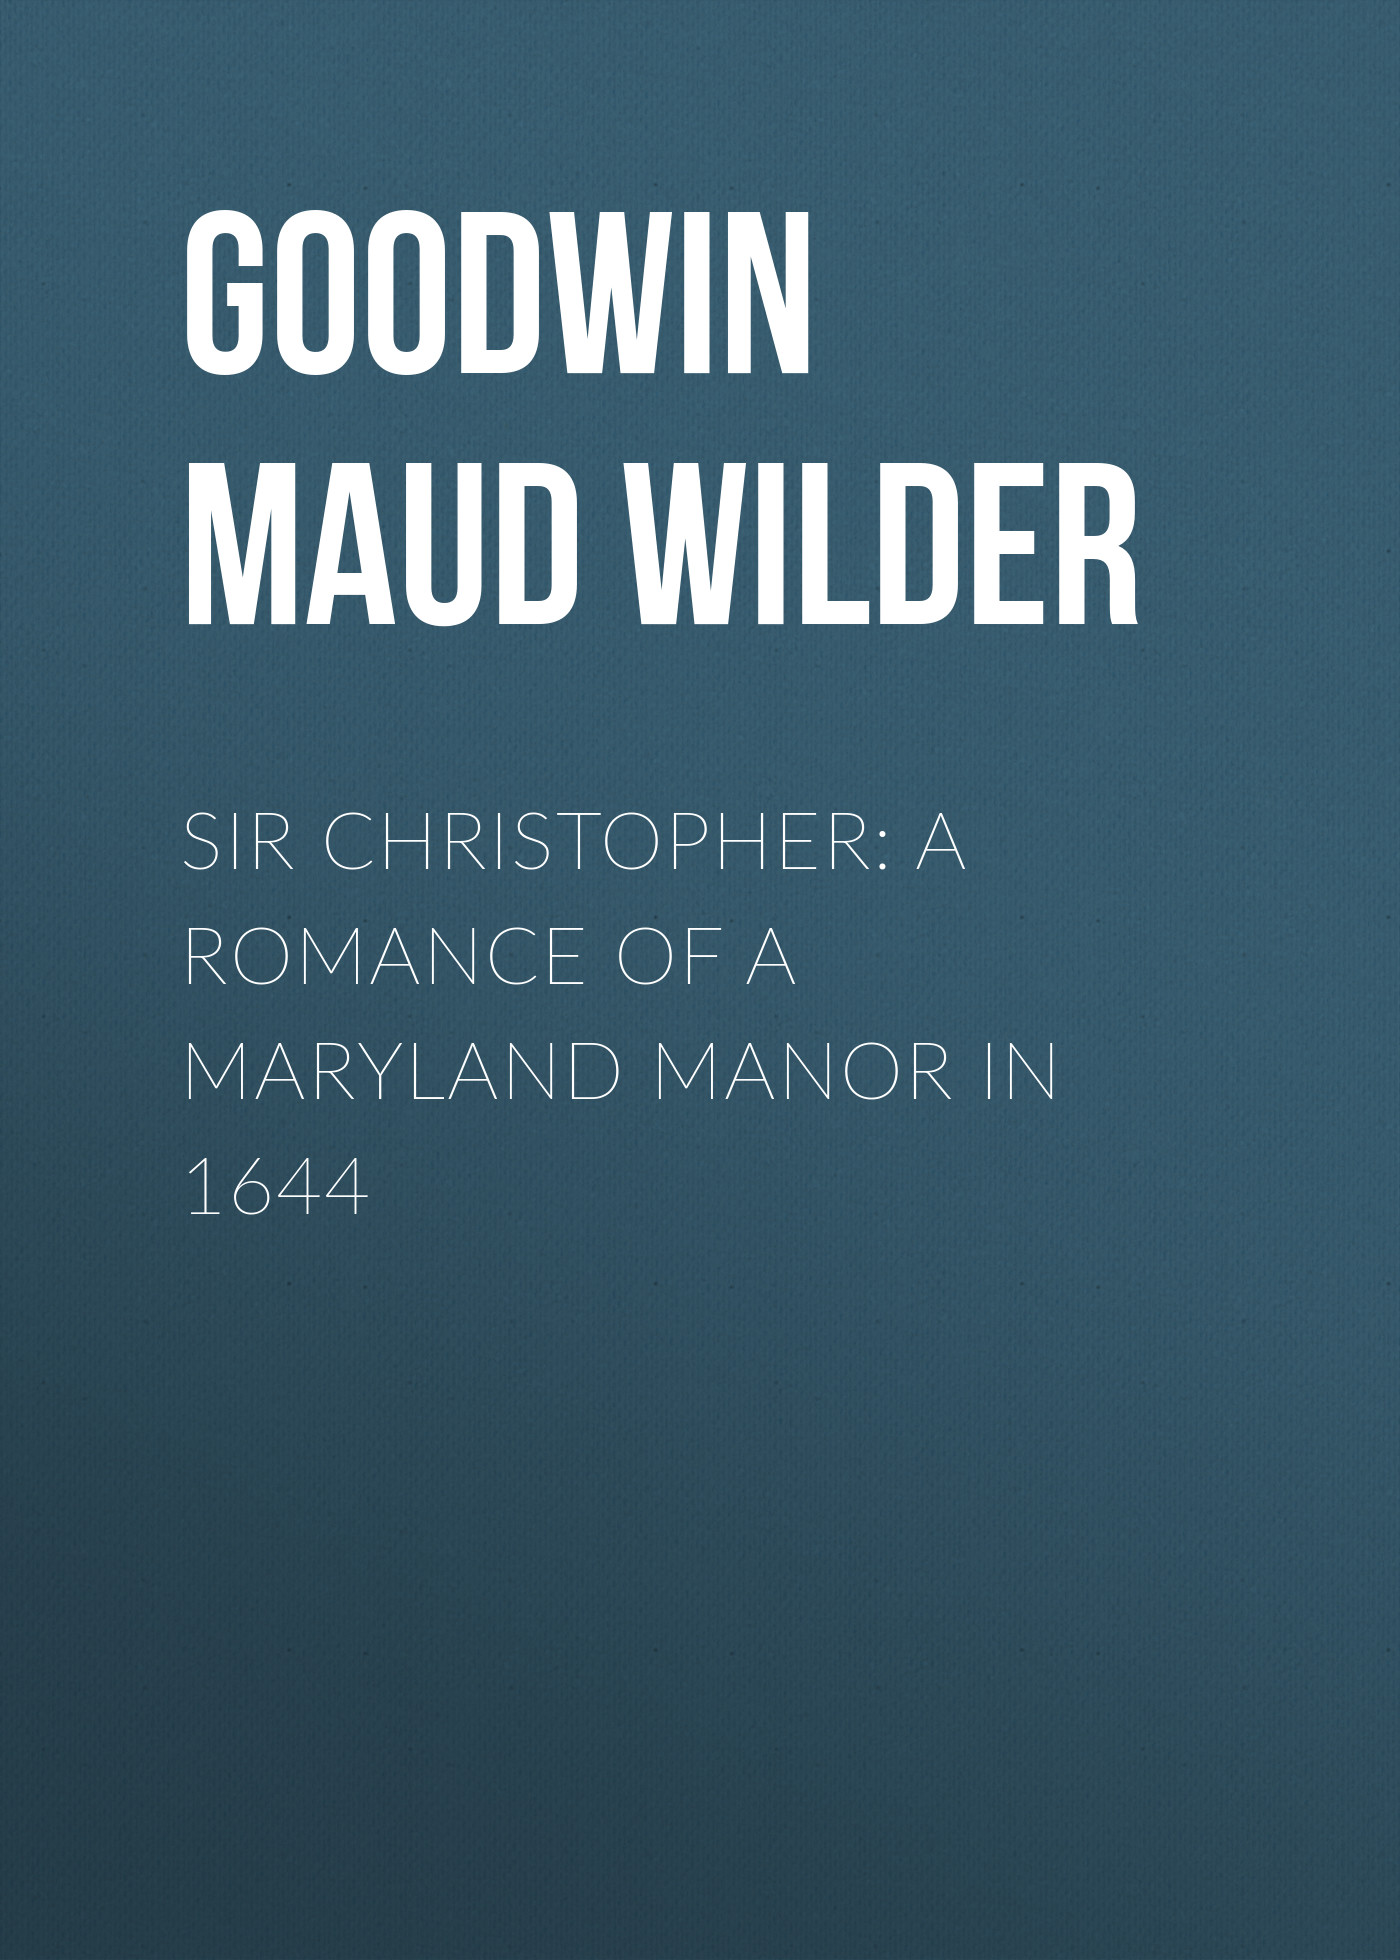 Goodwin Maud Wilder Sir Christopher: A Romance of a Maryland Manor in 1644 geoff quaife chesapeake chaos a luke tremayne adventure malevolence and betrayal in colonial maryland